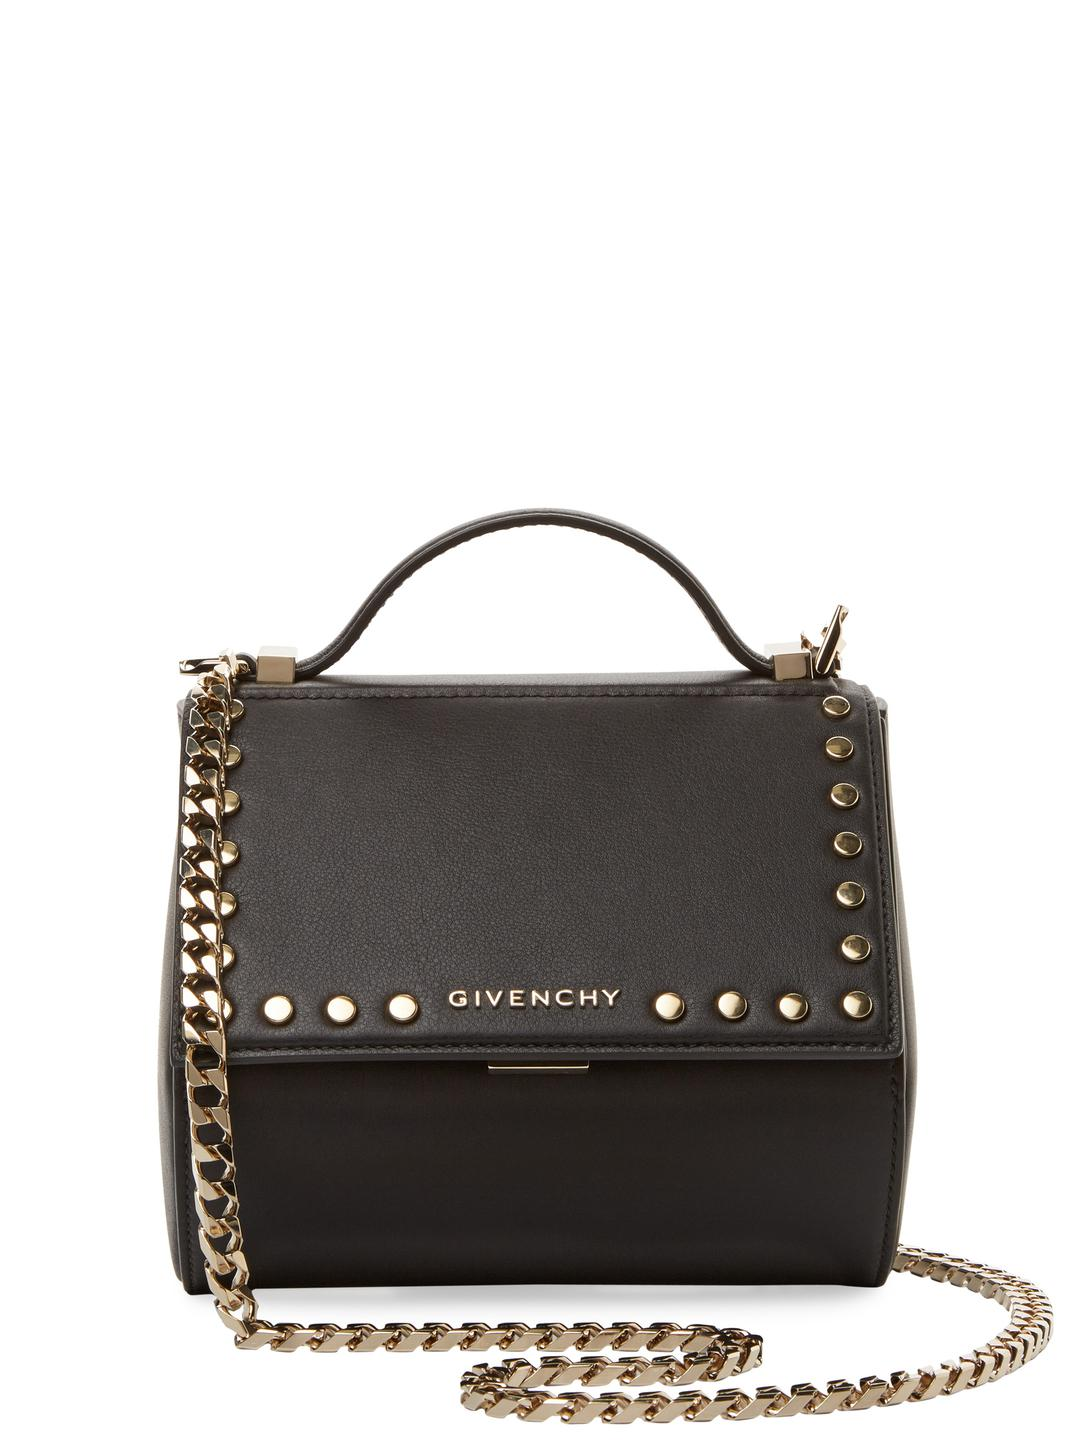 Lyst - Givenchy Mini Pandora Leather Crossbody Bag in Black - Save 25% c80f0e7d8095e